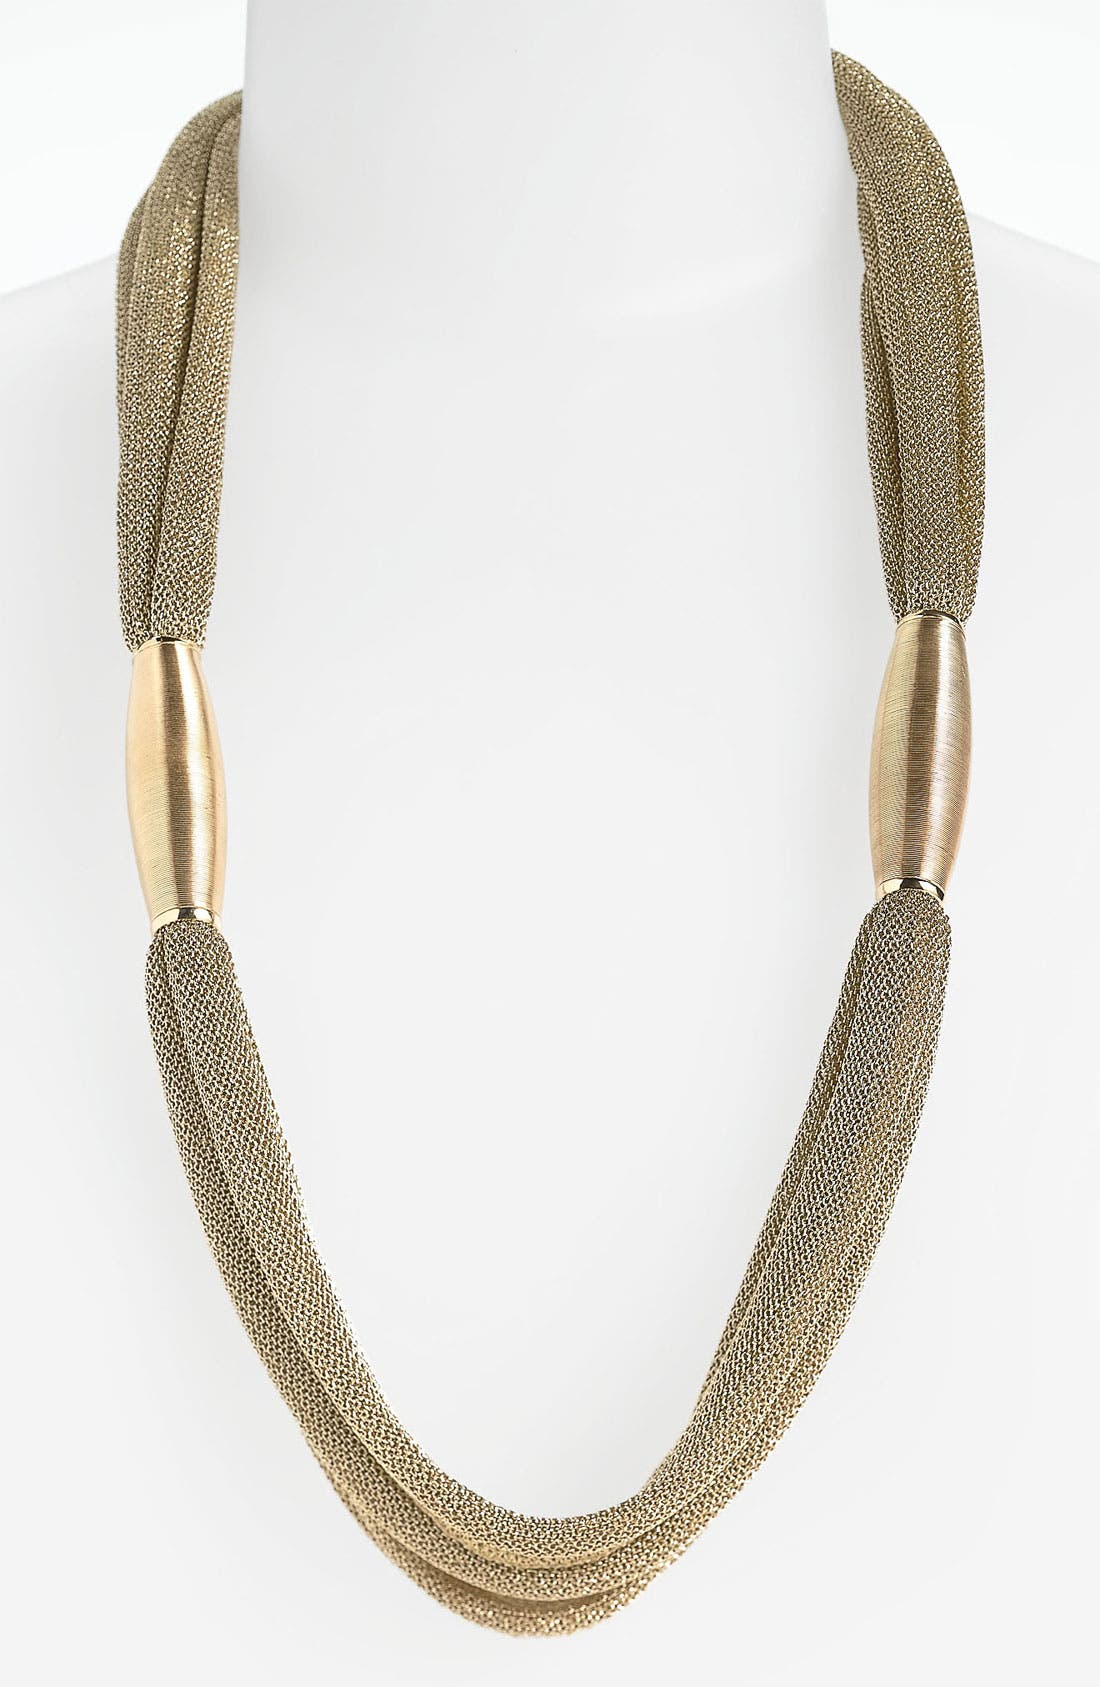 Main Image - Adami & Martucci 'Seta' Multistrand Necklace (Nordstrom Exclusive)